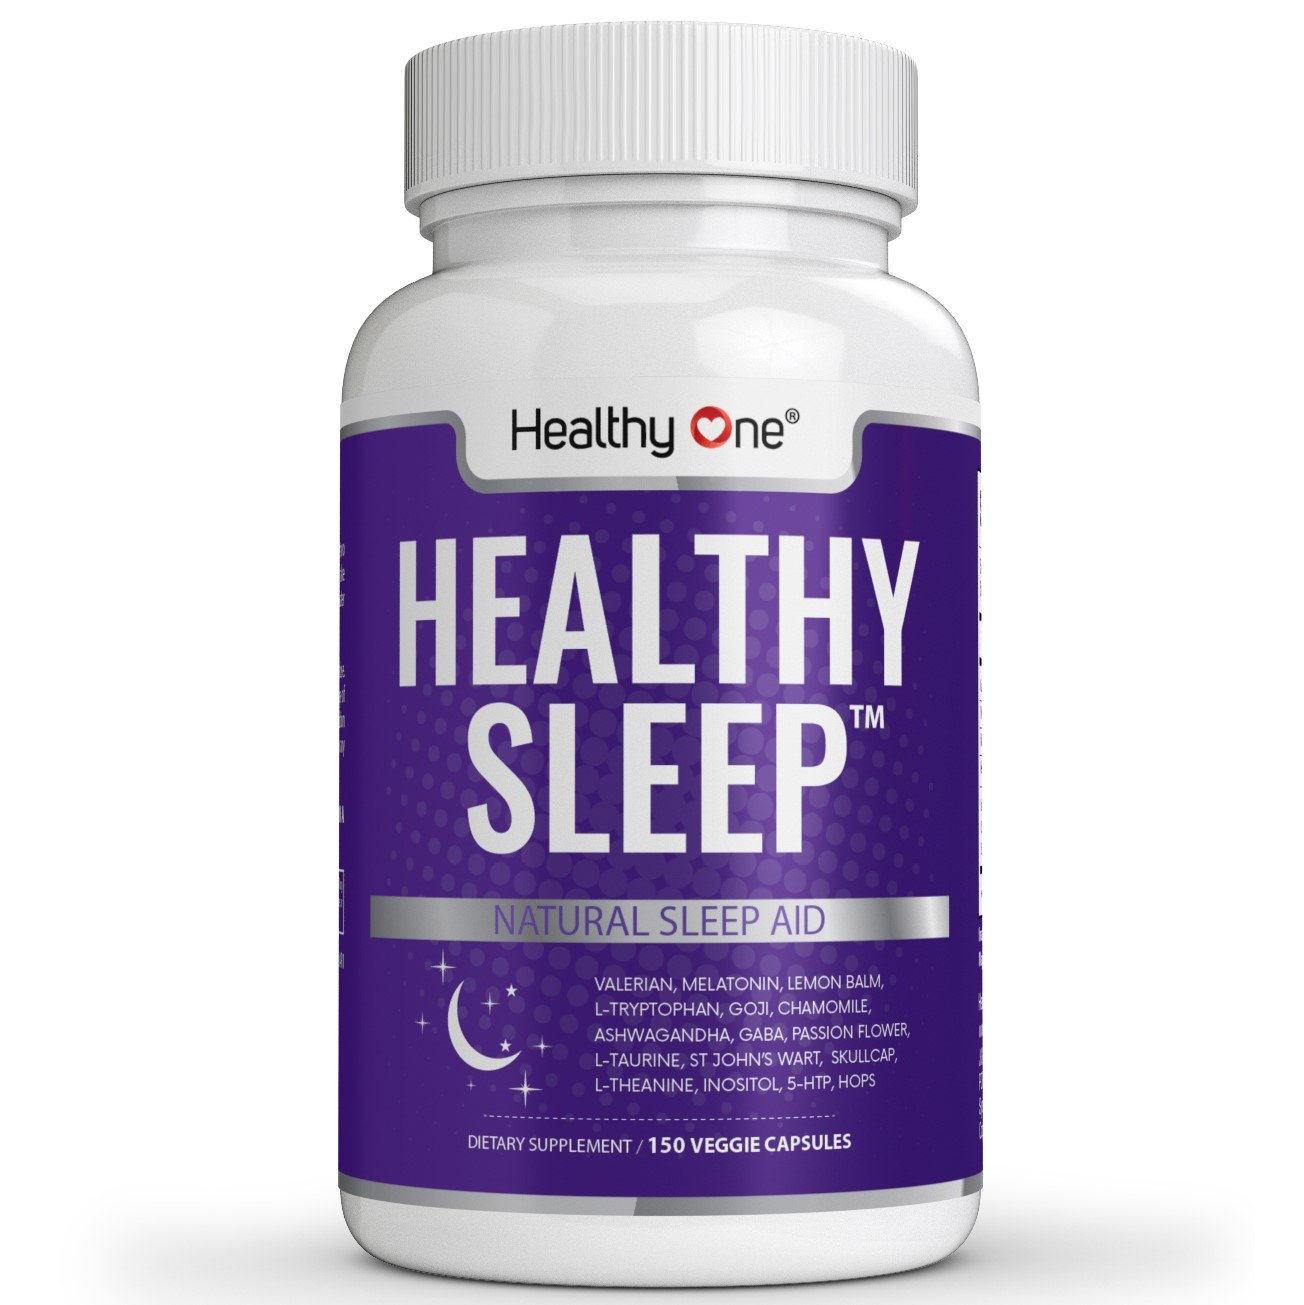 Healthy Sleep All-Natural Sleep Aid - Fall Asleep Quickly, Get Restful Sleep, Wake Up Energized | 60 Vegan Capsules | Herbal Supplement with Melatonin, Valerian, Chamomile